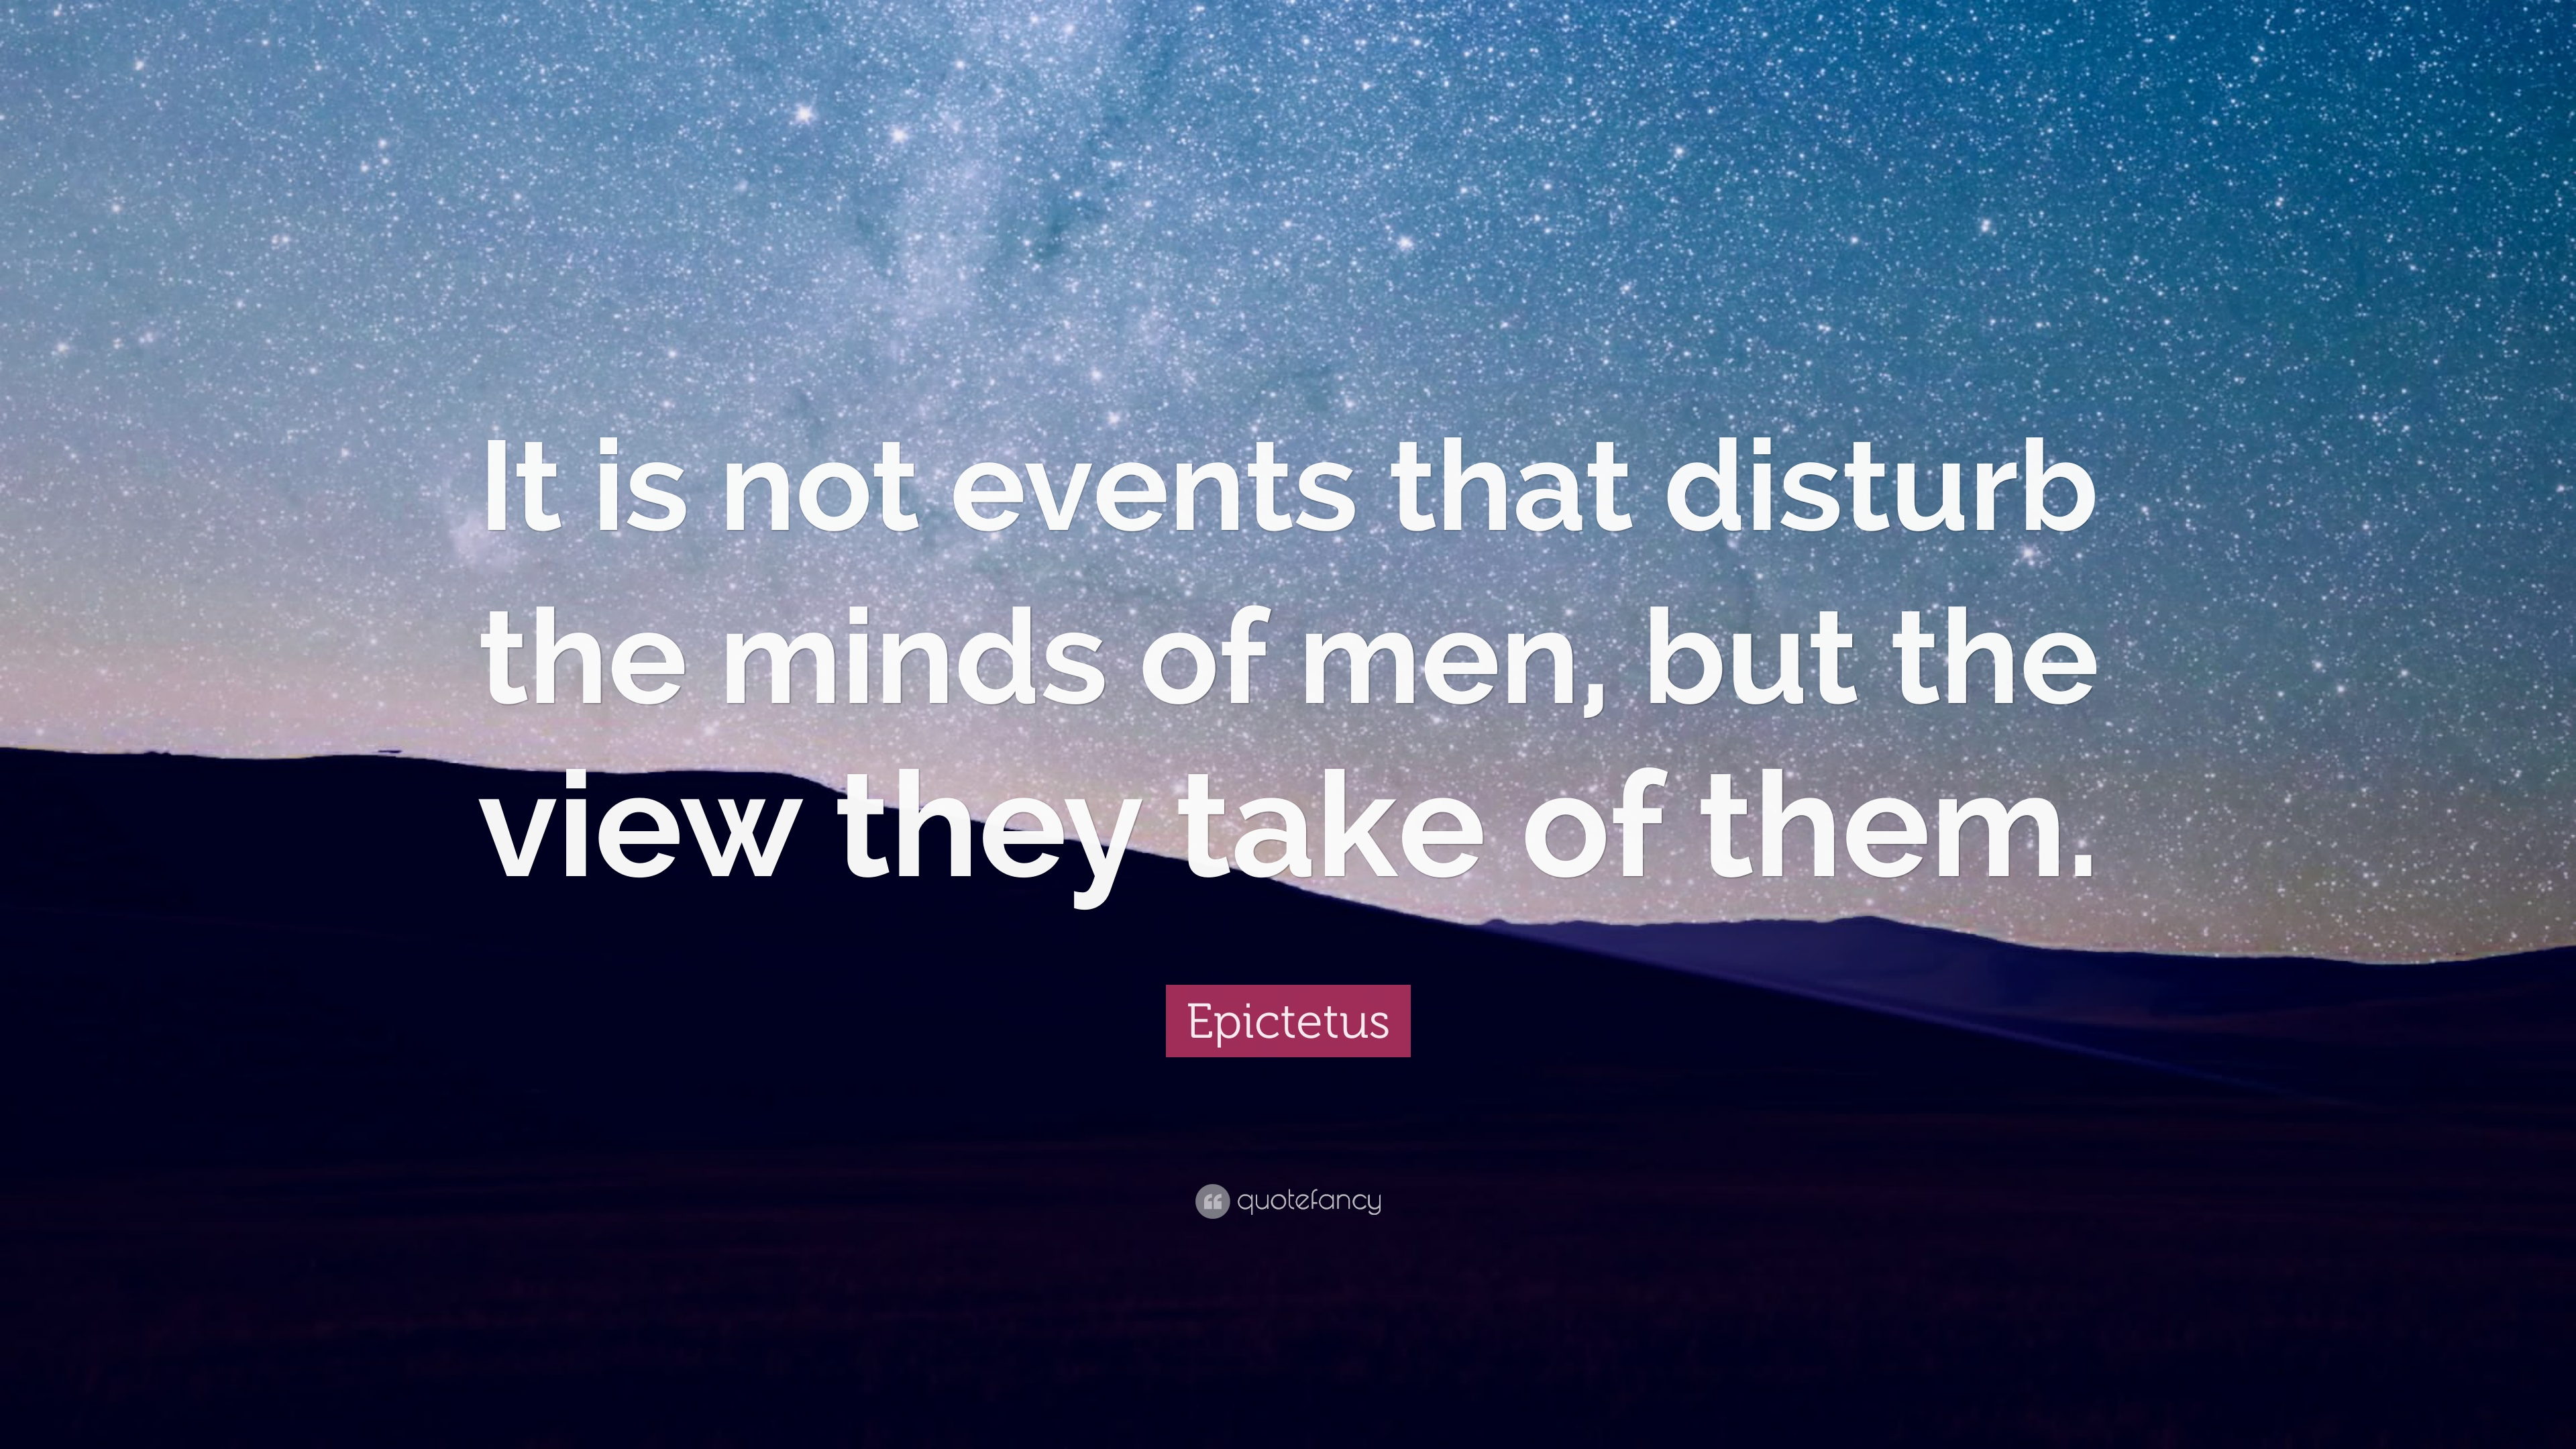 Epictetus Quotes | Epictetus Quote It Is Not Events That Disturb The Minds Of Men